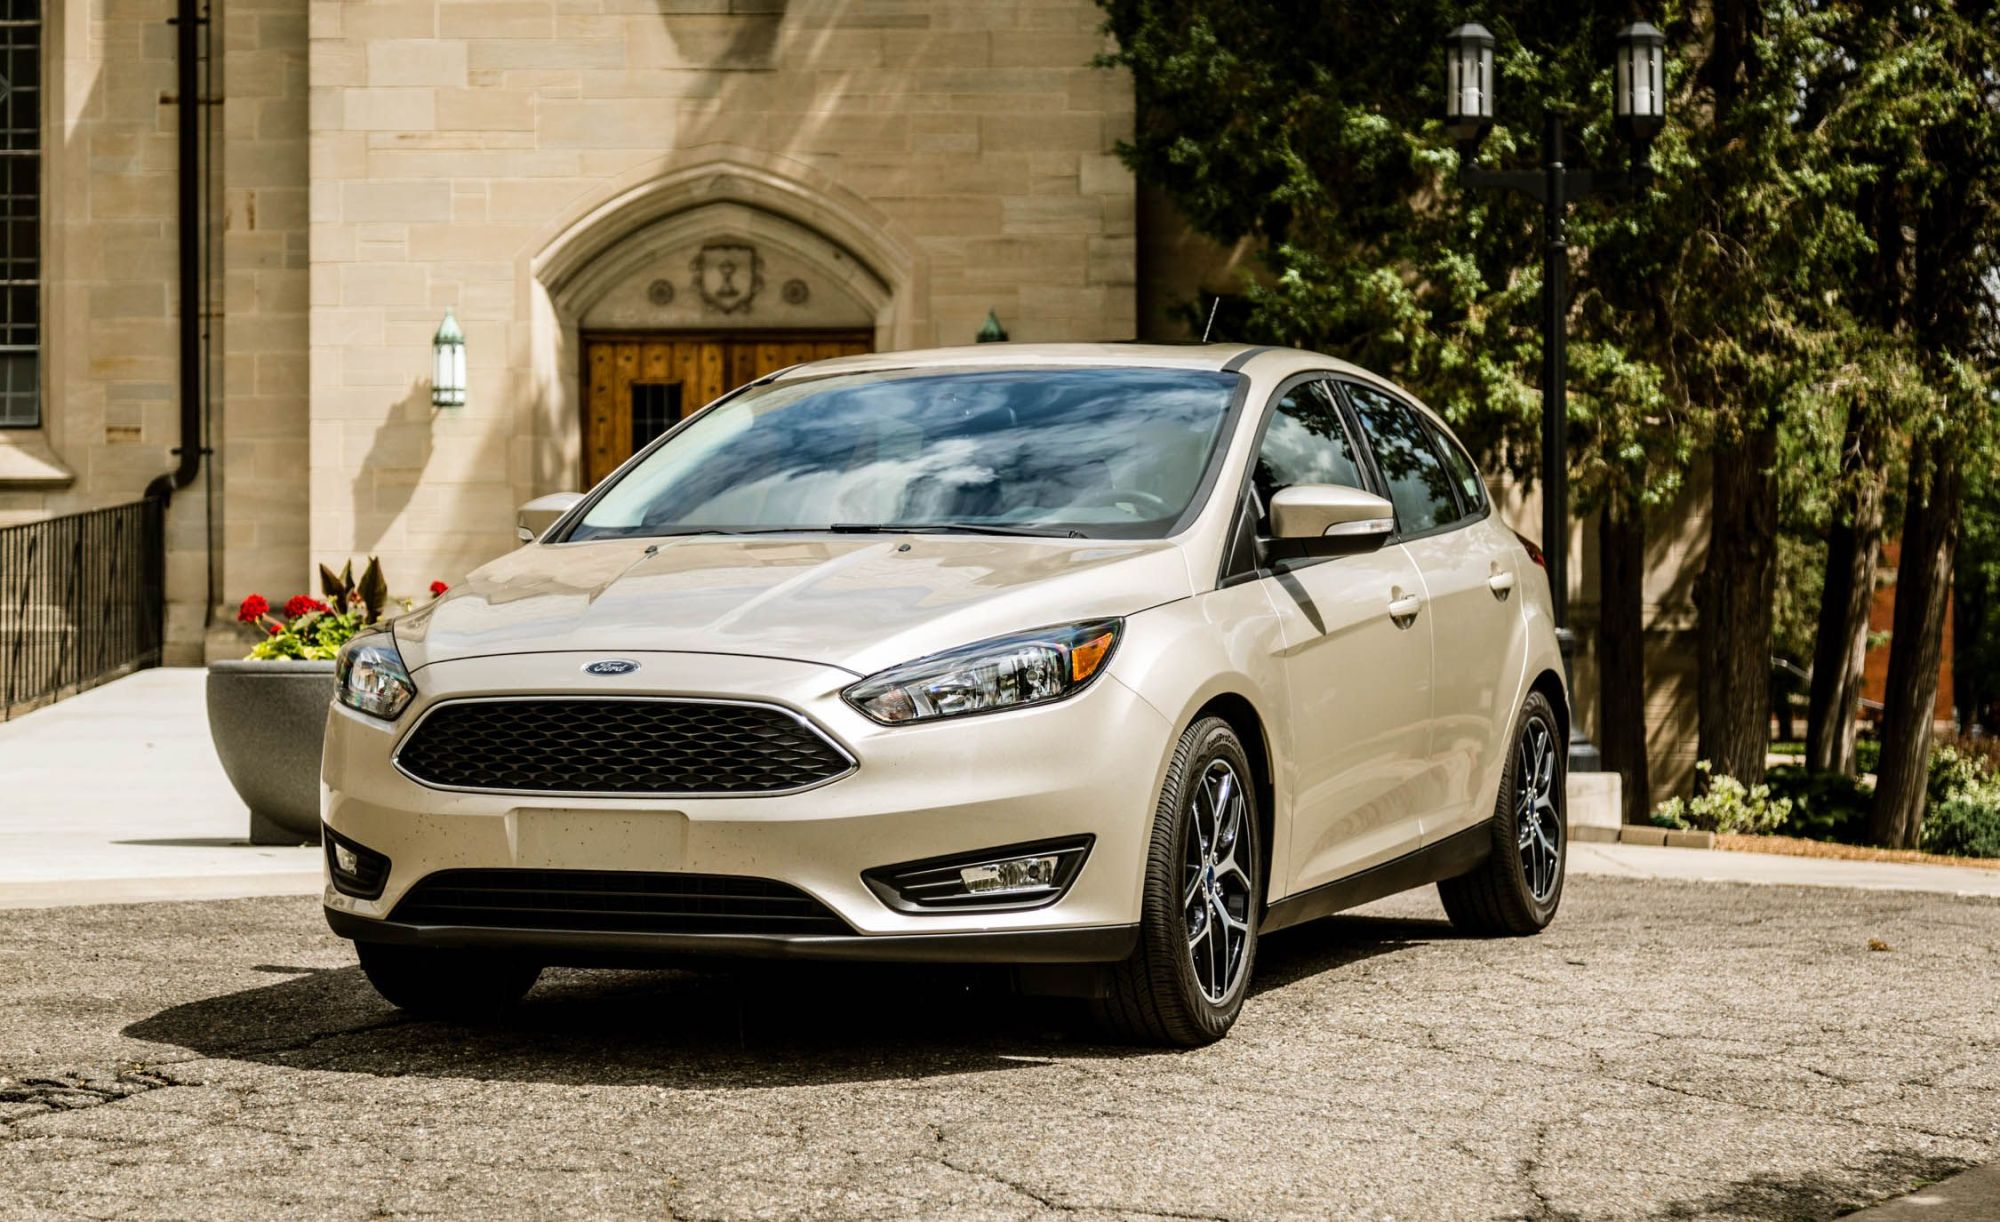 hight resolution of ford recalling nearly 1 5 million focus cars over stalling issue